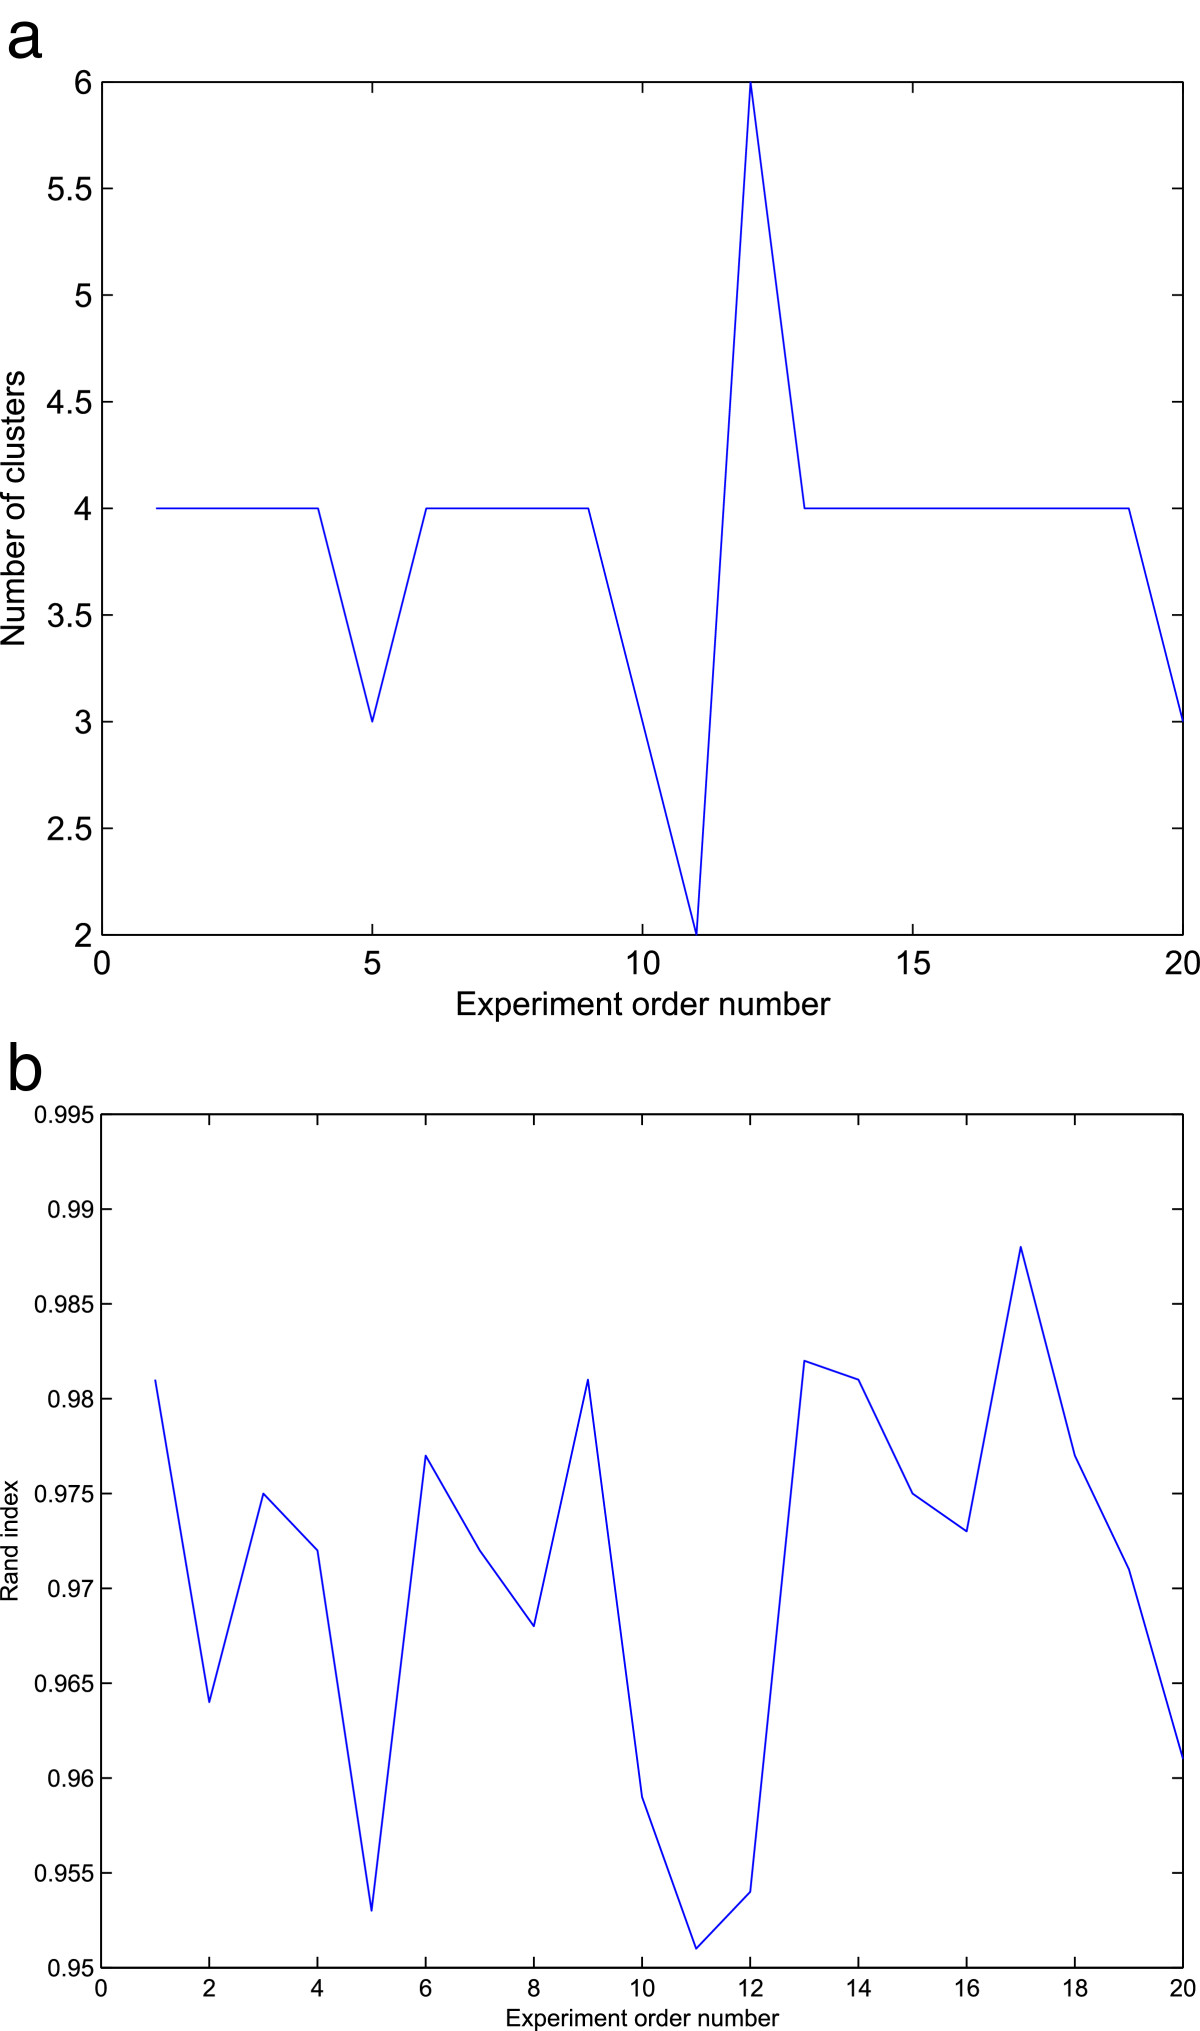 http://static-content.springer.com/image/art%3A10.1186%2F1687-4153-2013-5/MediaObjects/13637_2012_Article_31_Fig4_HTML.jpg